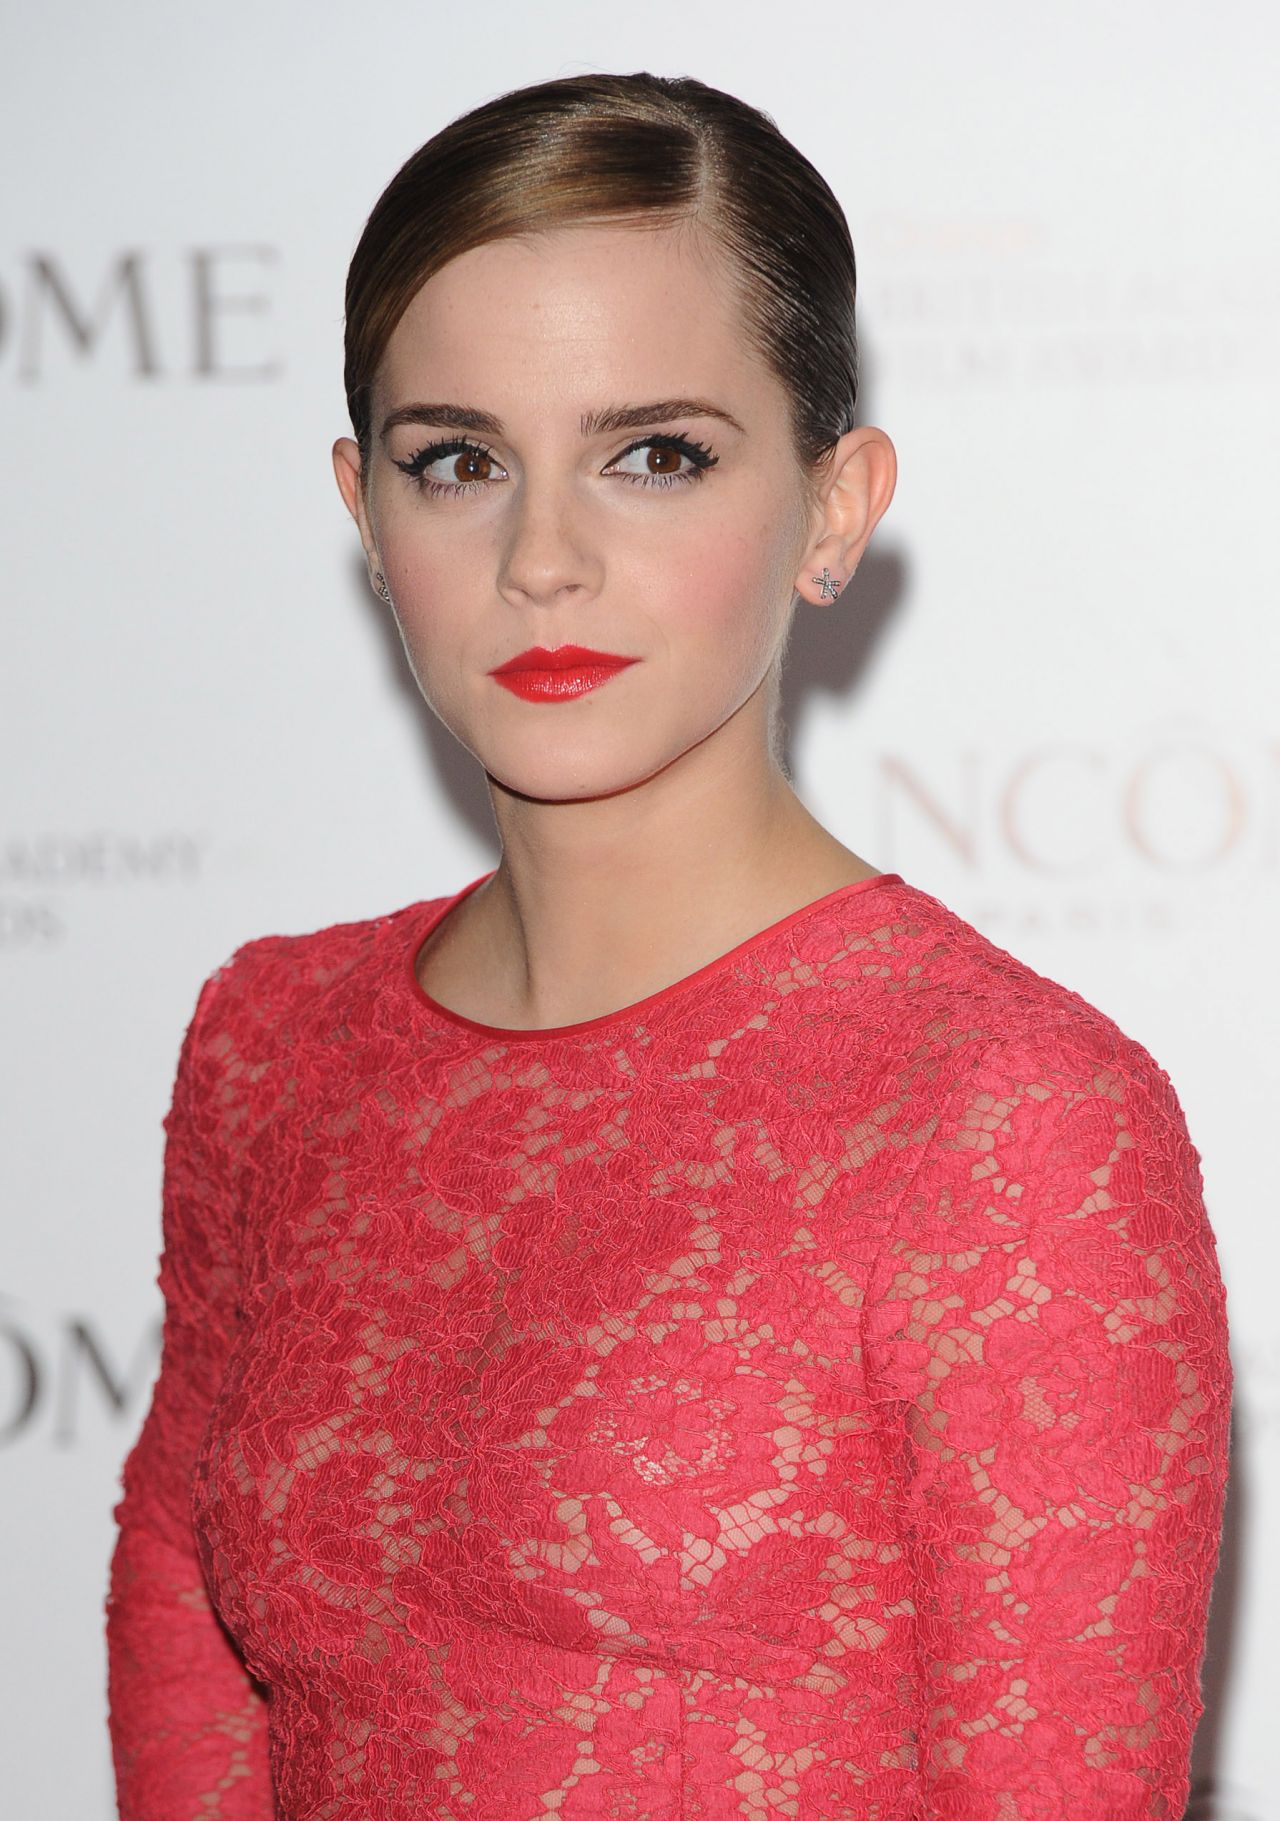 Emma Watson - Pre-Bafta Party In London, October 2016-9698